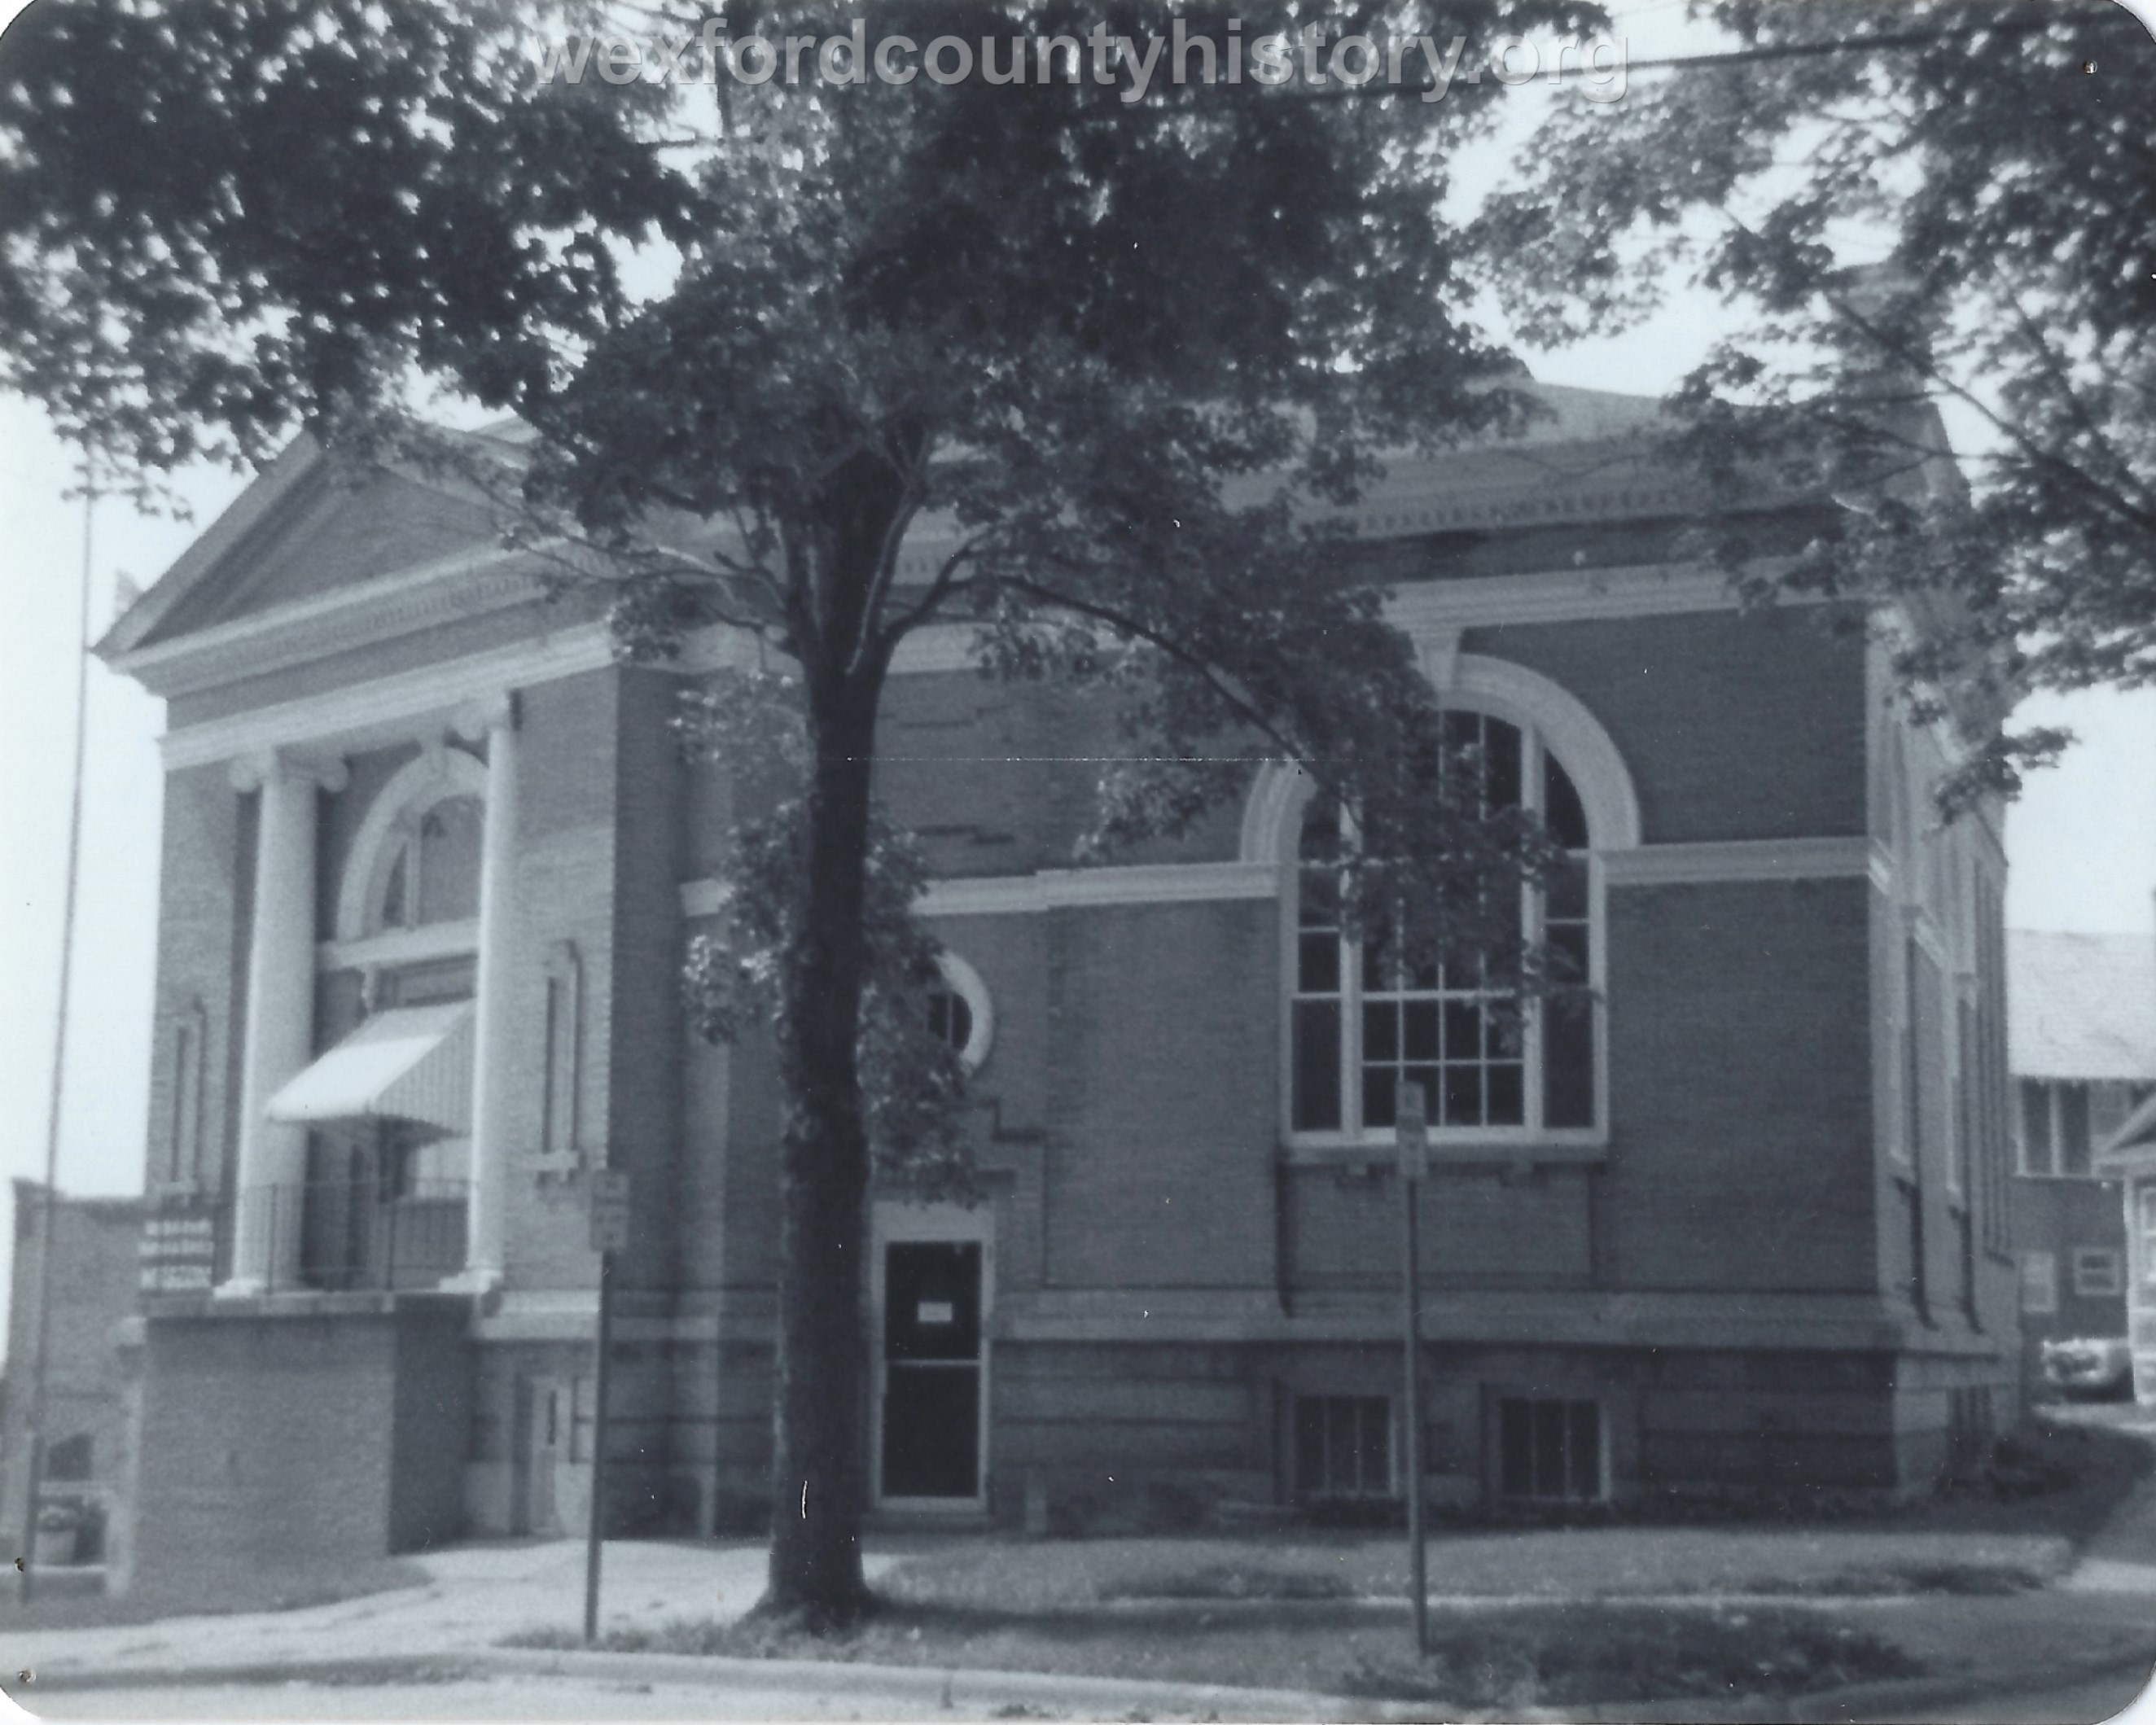 Wexford County Historical Society